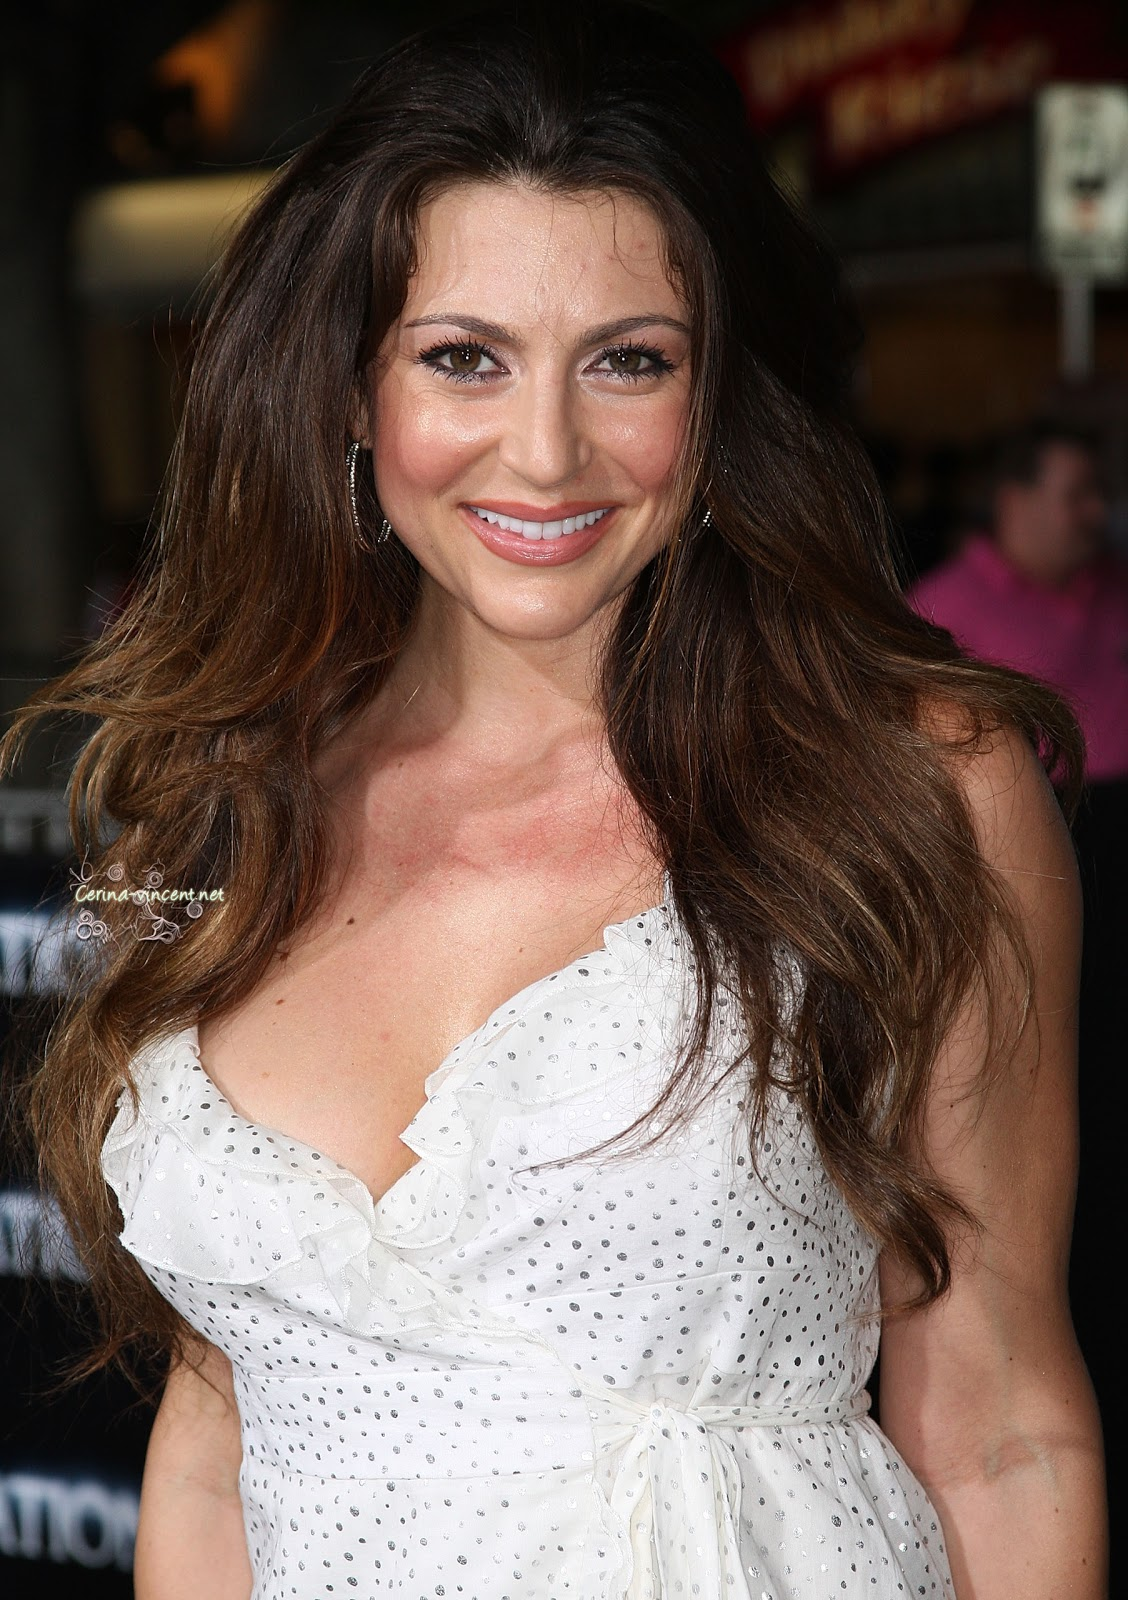 The 39-year old daughter of father (?) and mother(?) Cerina Vincent in 2018 photo. Cerina Vincent earned a  million dollar salary - leaving the net worth at 4 million in 2018